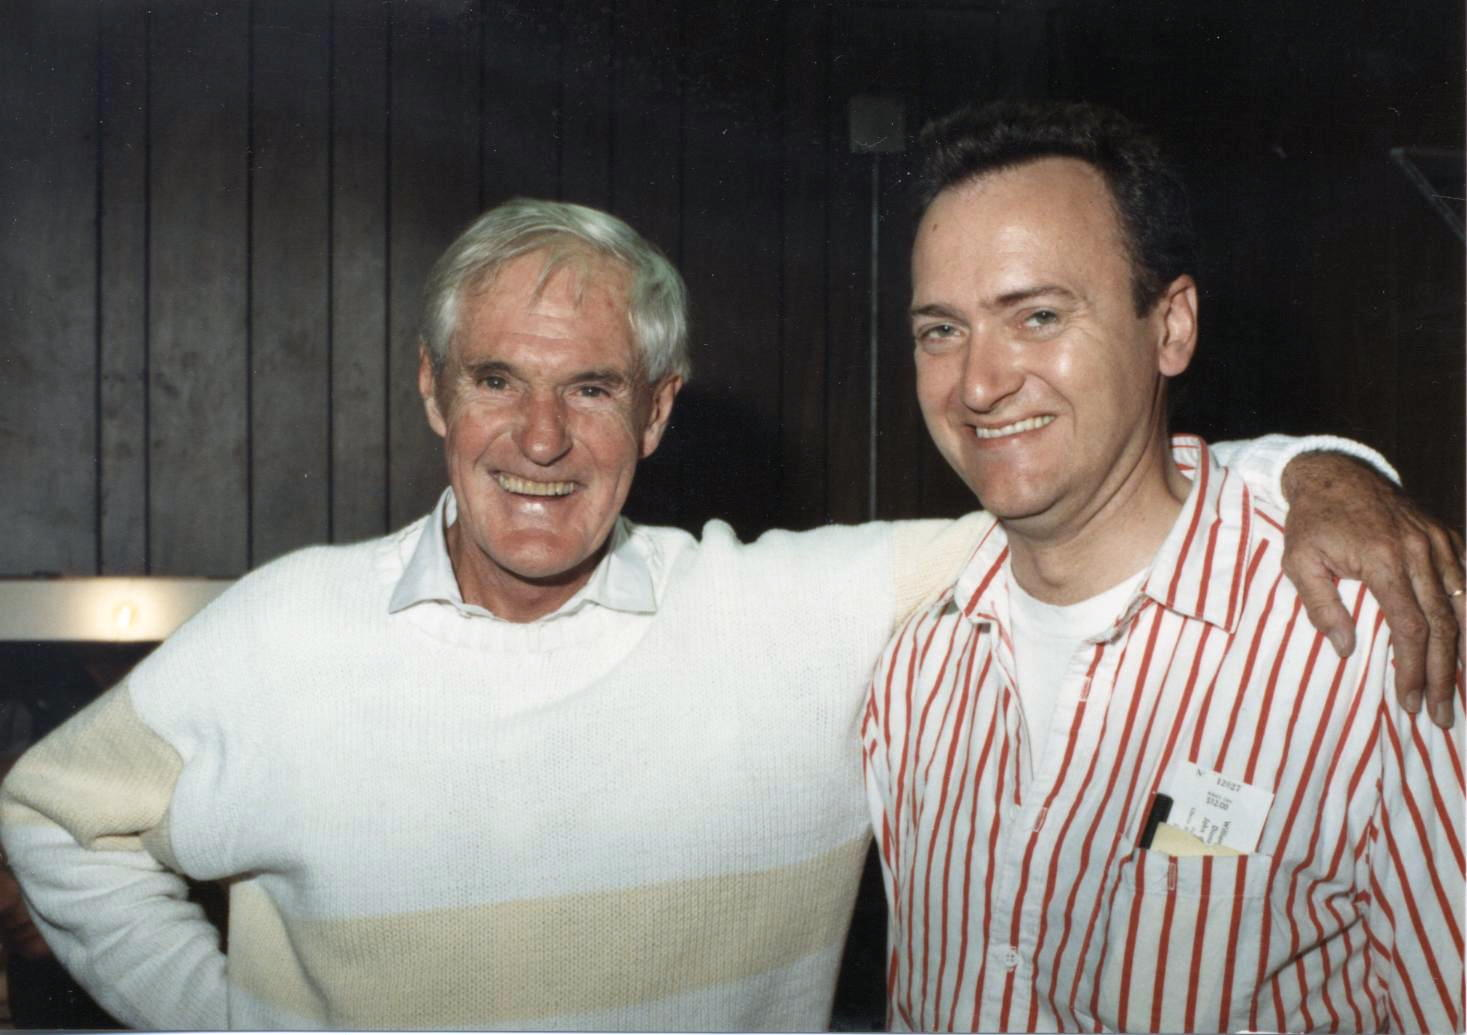 [photograph image: Dr. Timothy Leary, River City Reunion, Photograph, with George Laughead, September 12, 1987, Liberty Hall, Lawrence; copyright 1987 by Doug L. Miller, used with permission.]